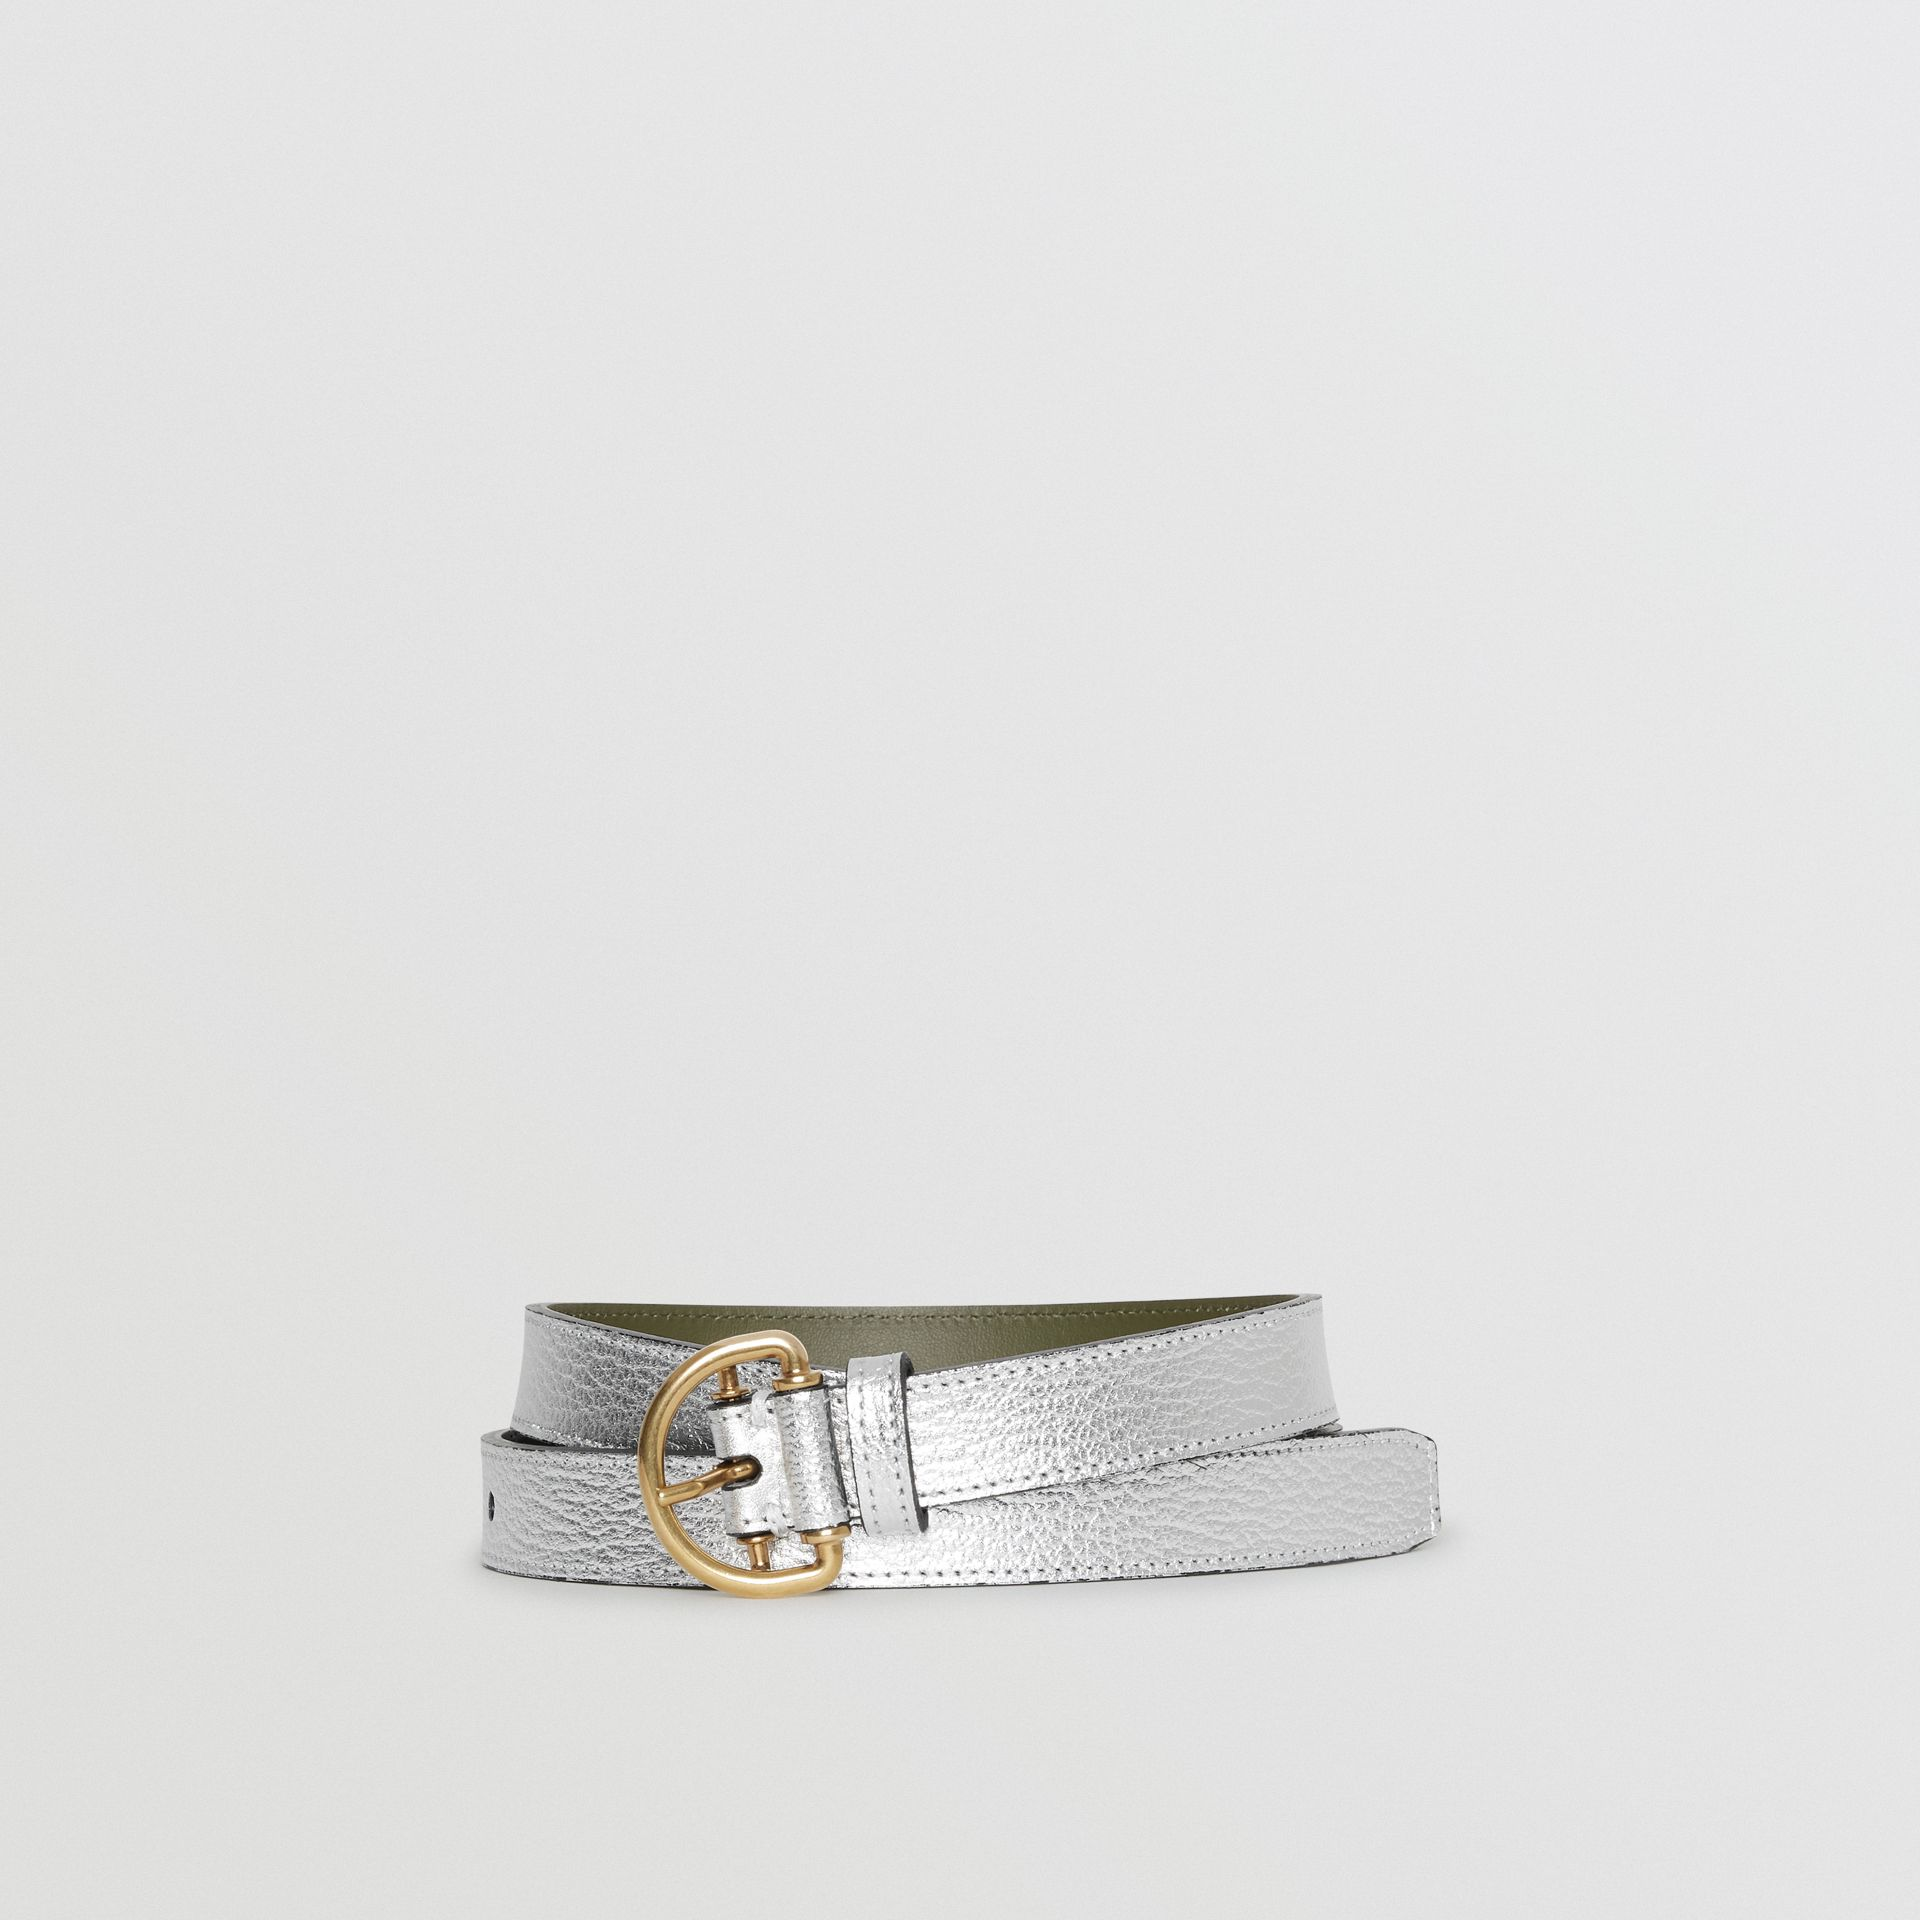 Slim Metallic Leather D-ring Belt in Silver/dark Olive - Women | Burberry Australia - gallery image 0